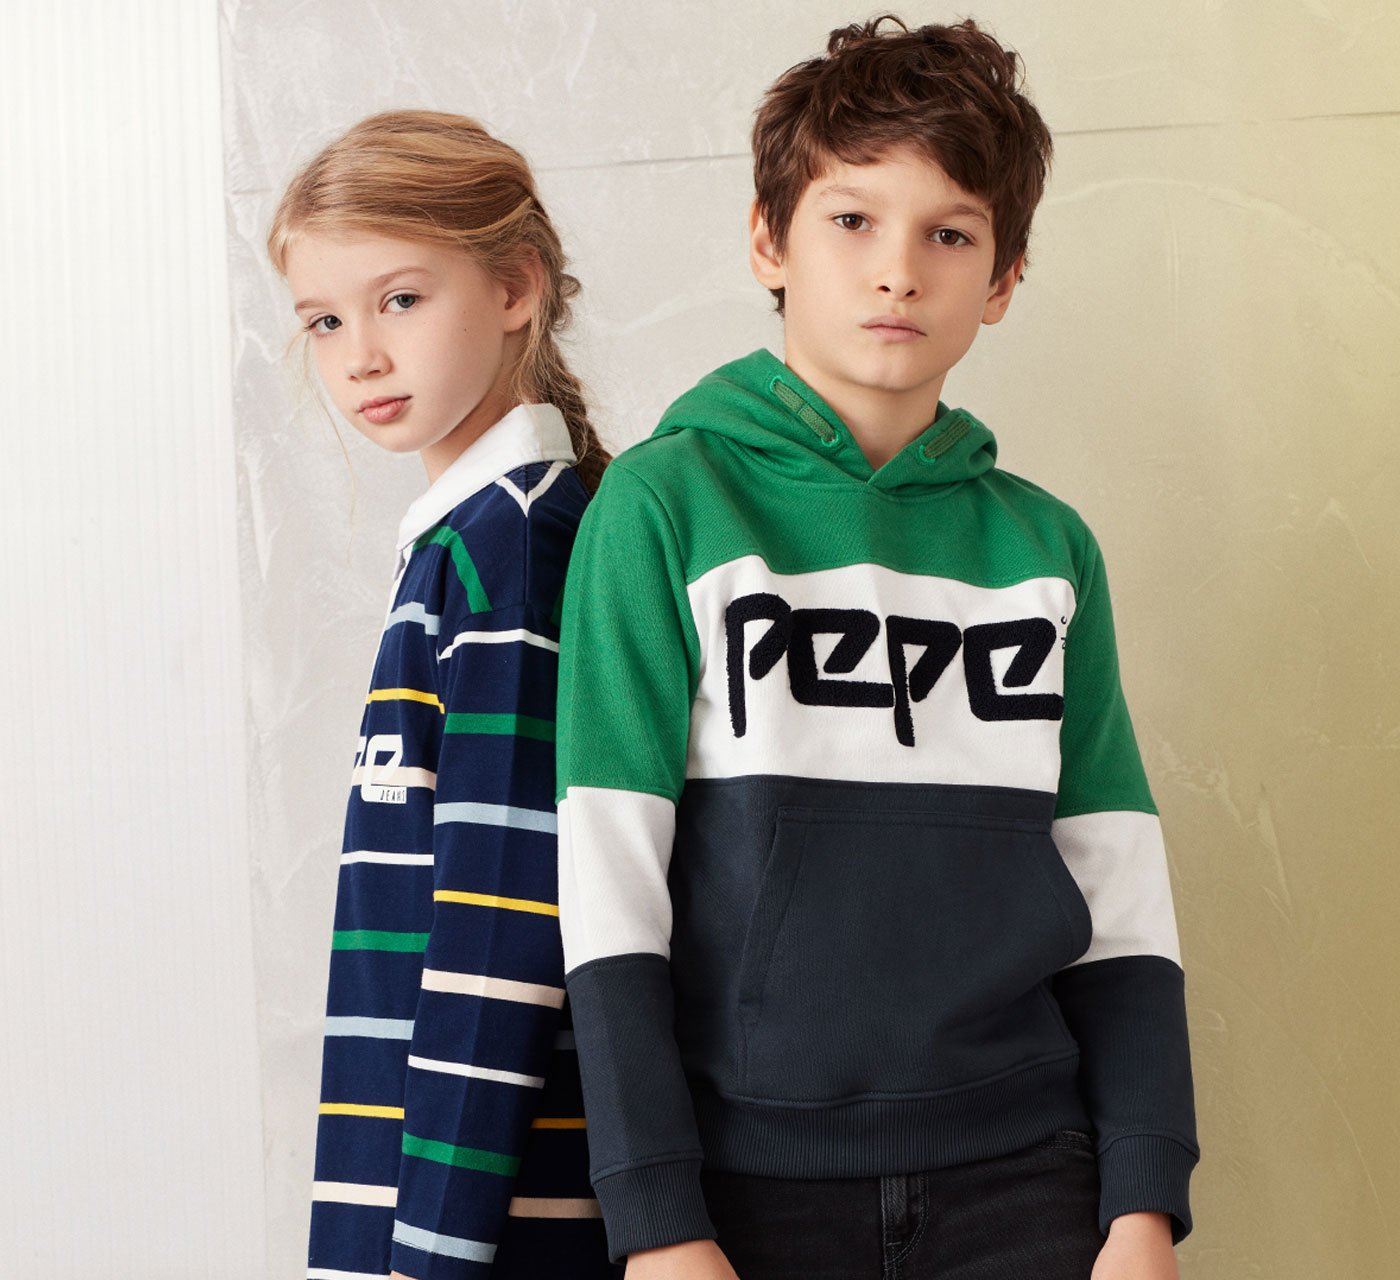 A new Generation by Pepe Jeans